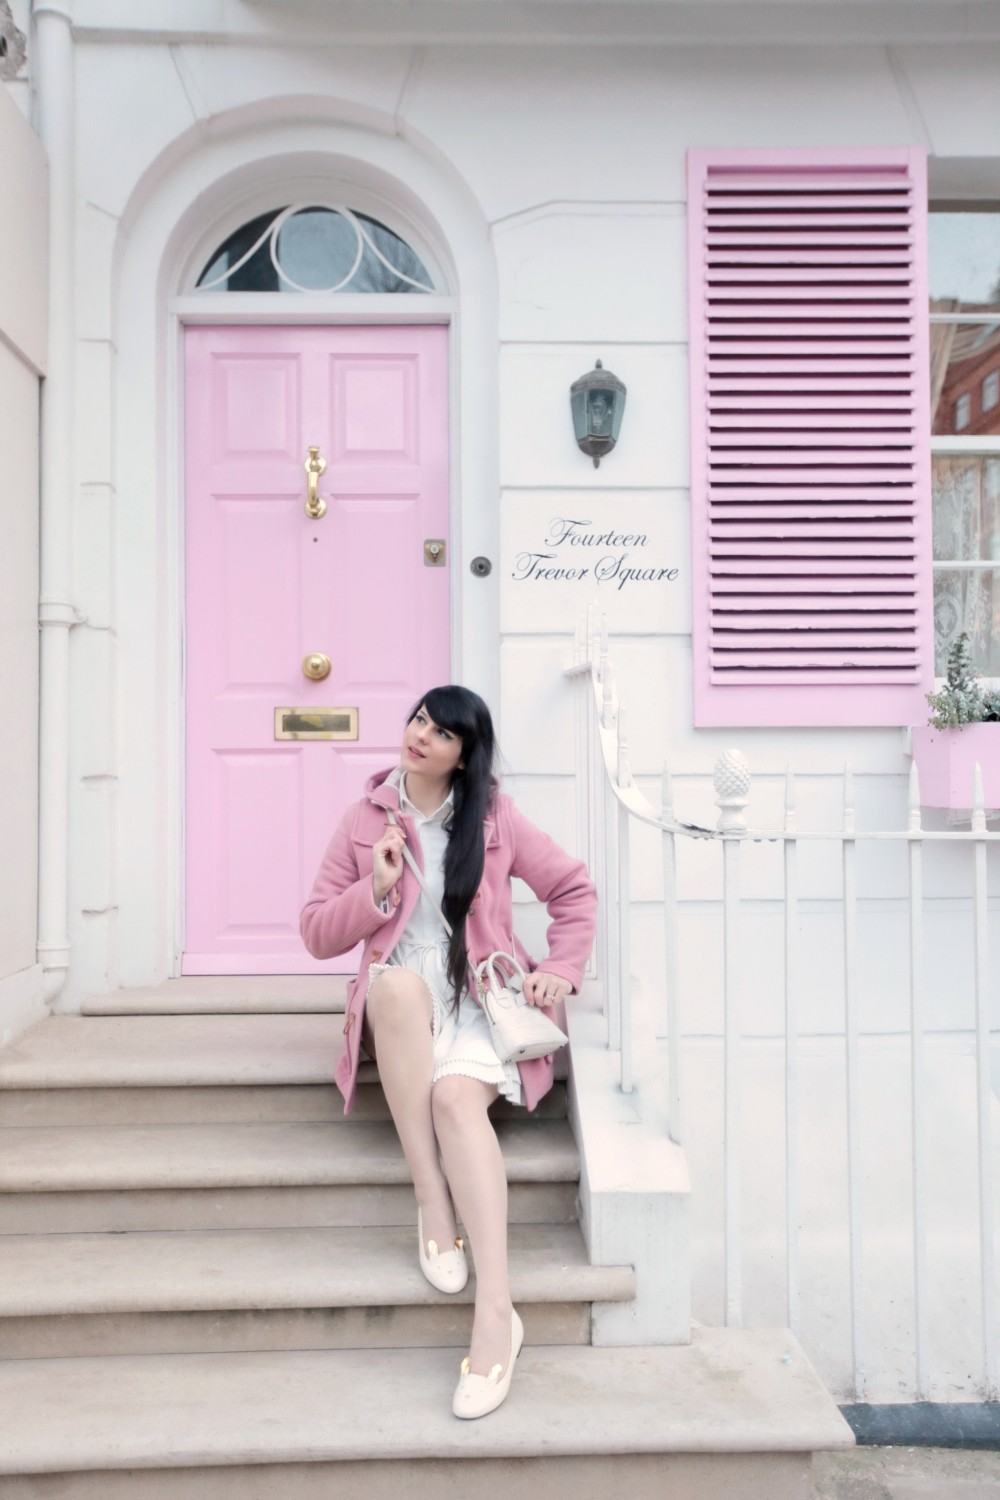 the-cherry-blossom-girl-london-pink-door-17